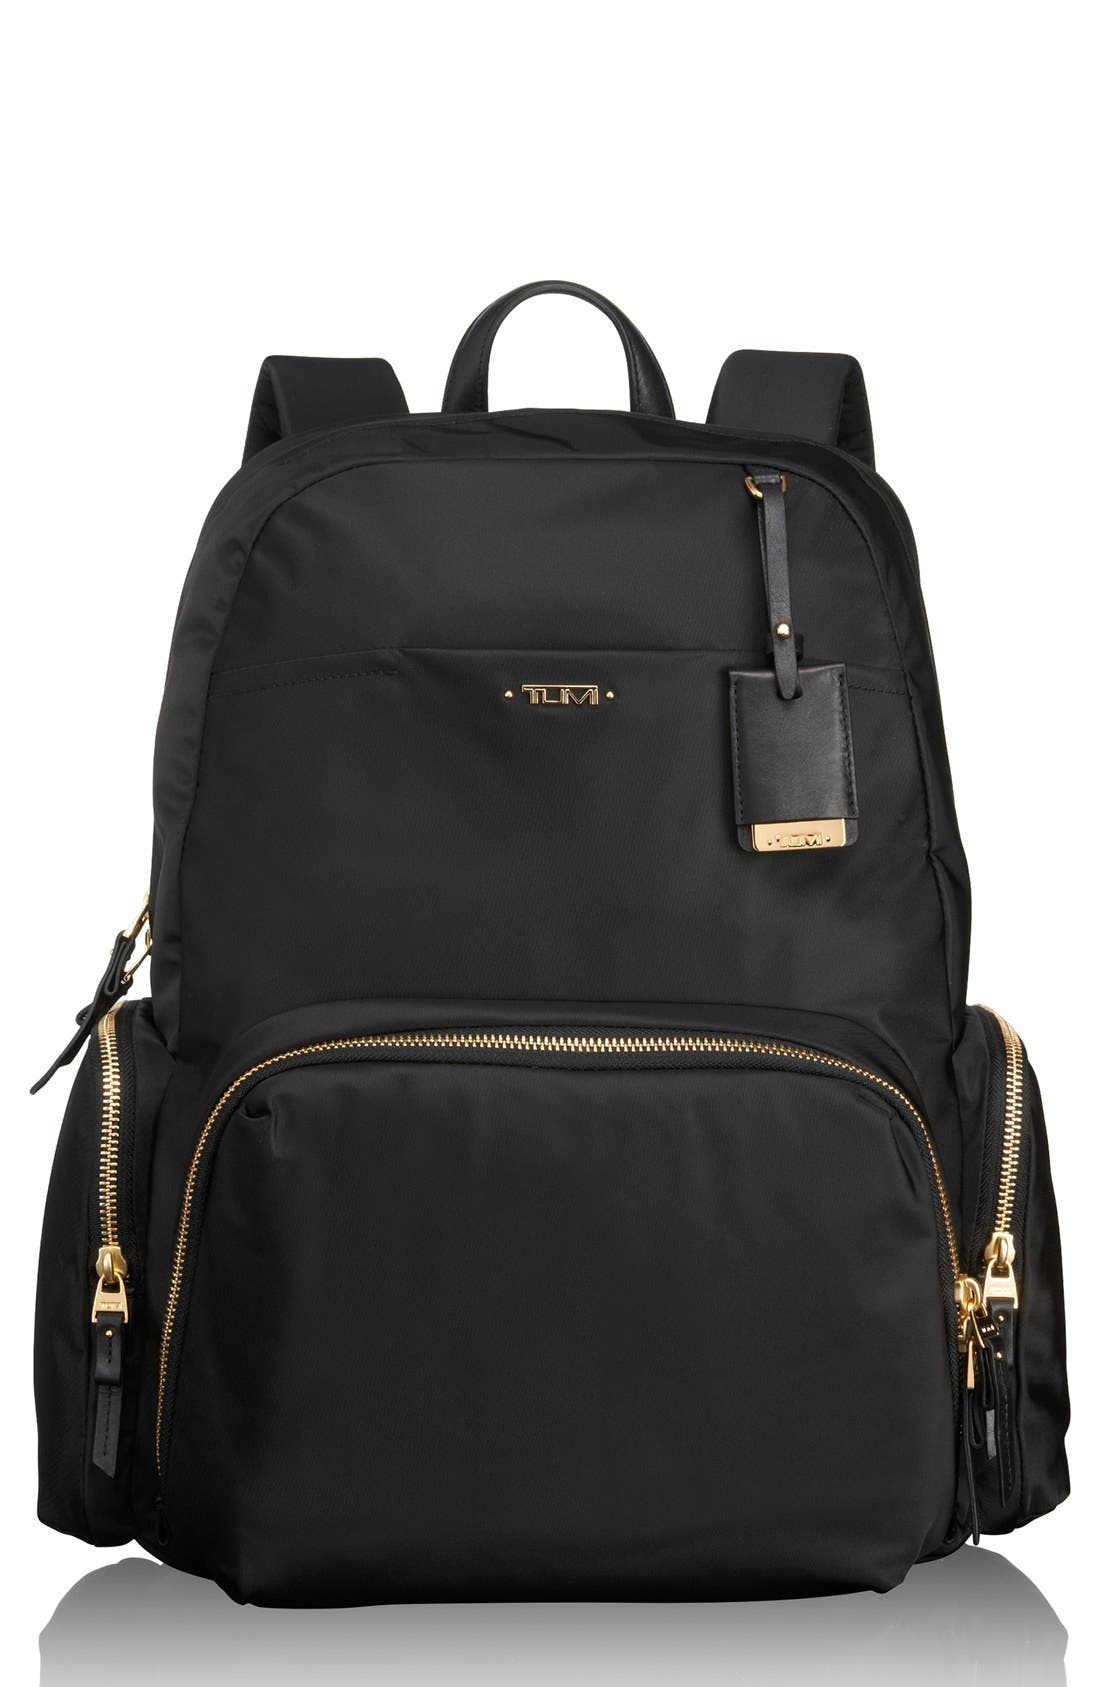 Alternate Image 1 Selected - Tumi Calais Nylon 15 Inch Computer Commuter Backpack